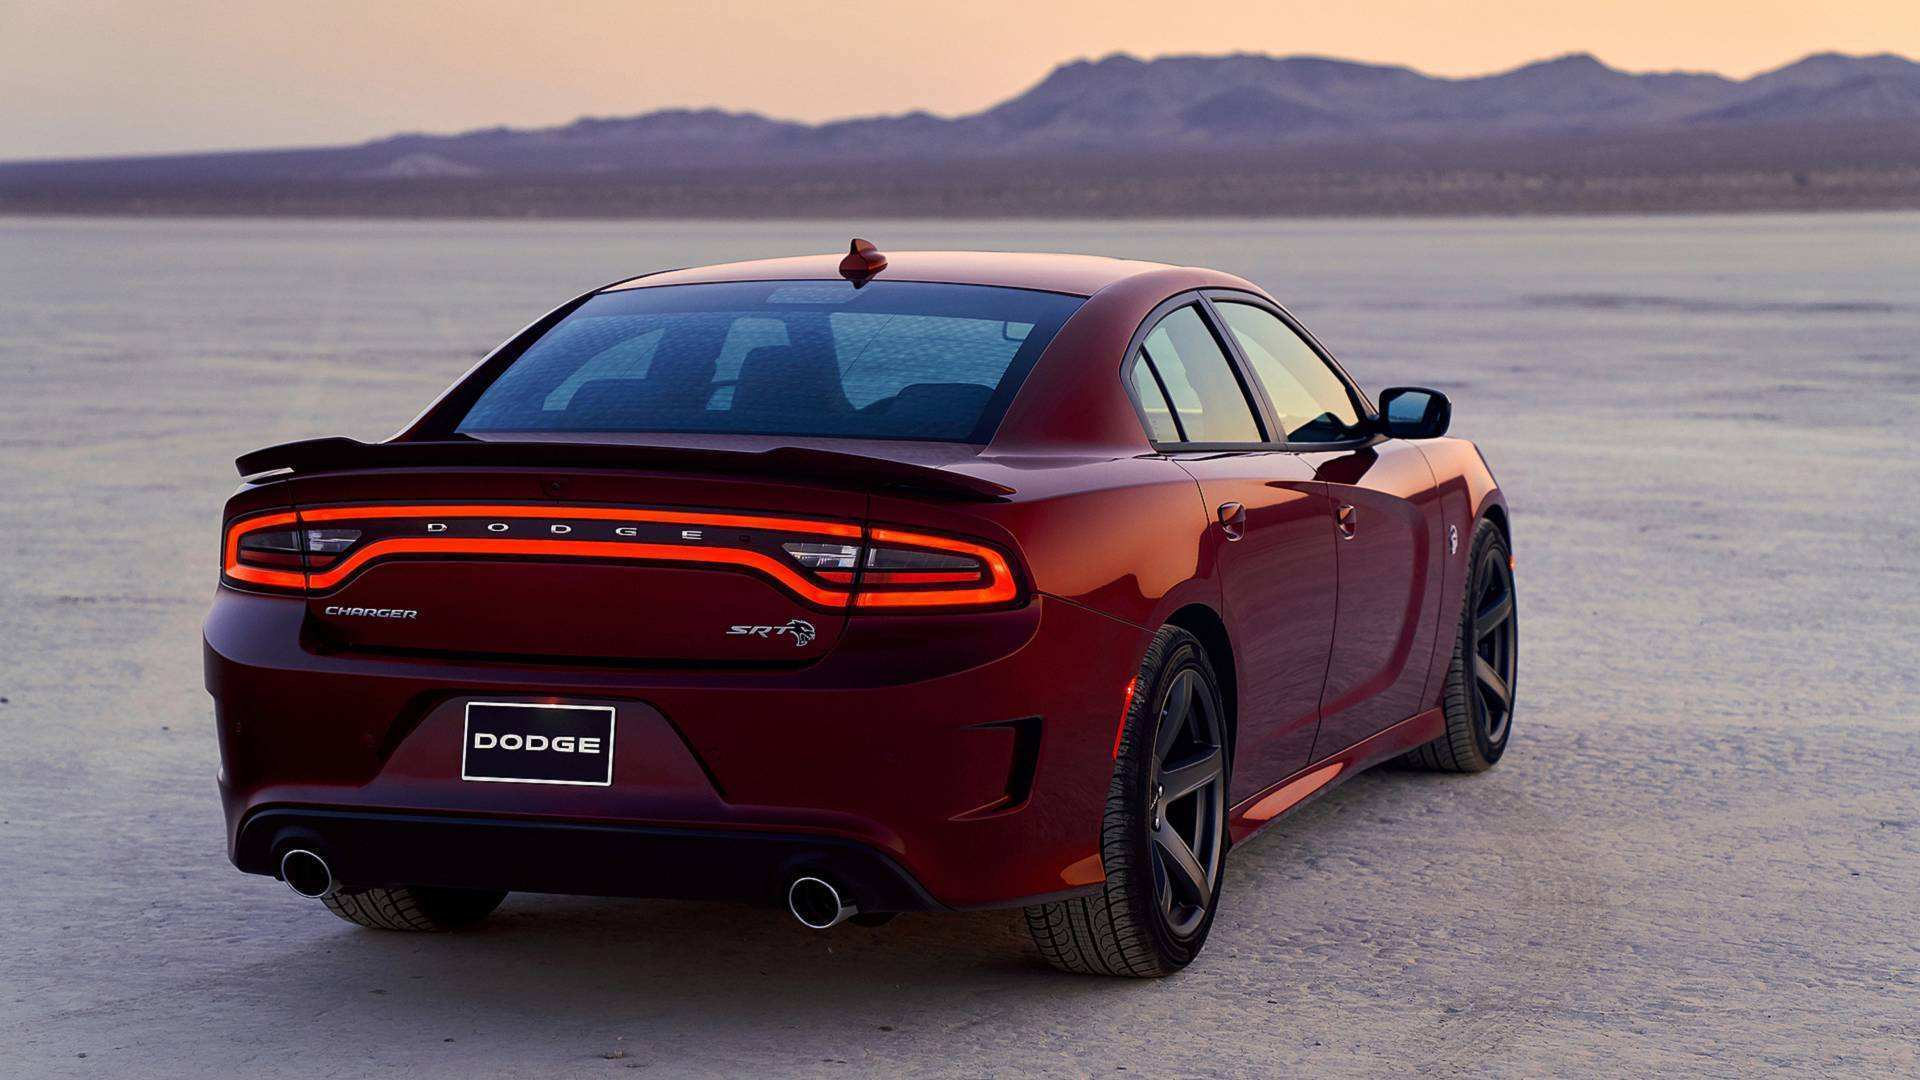 54 The Best 2019 Dodge Charger Srt 8 Price